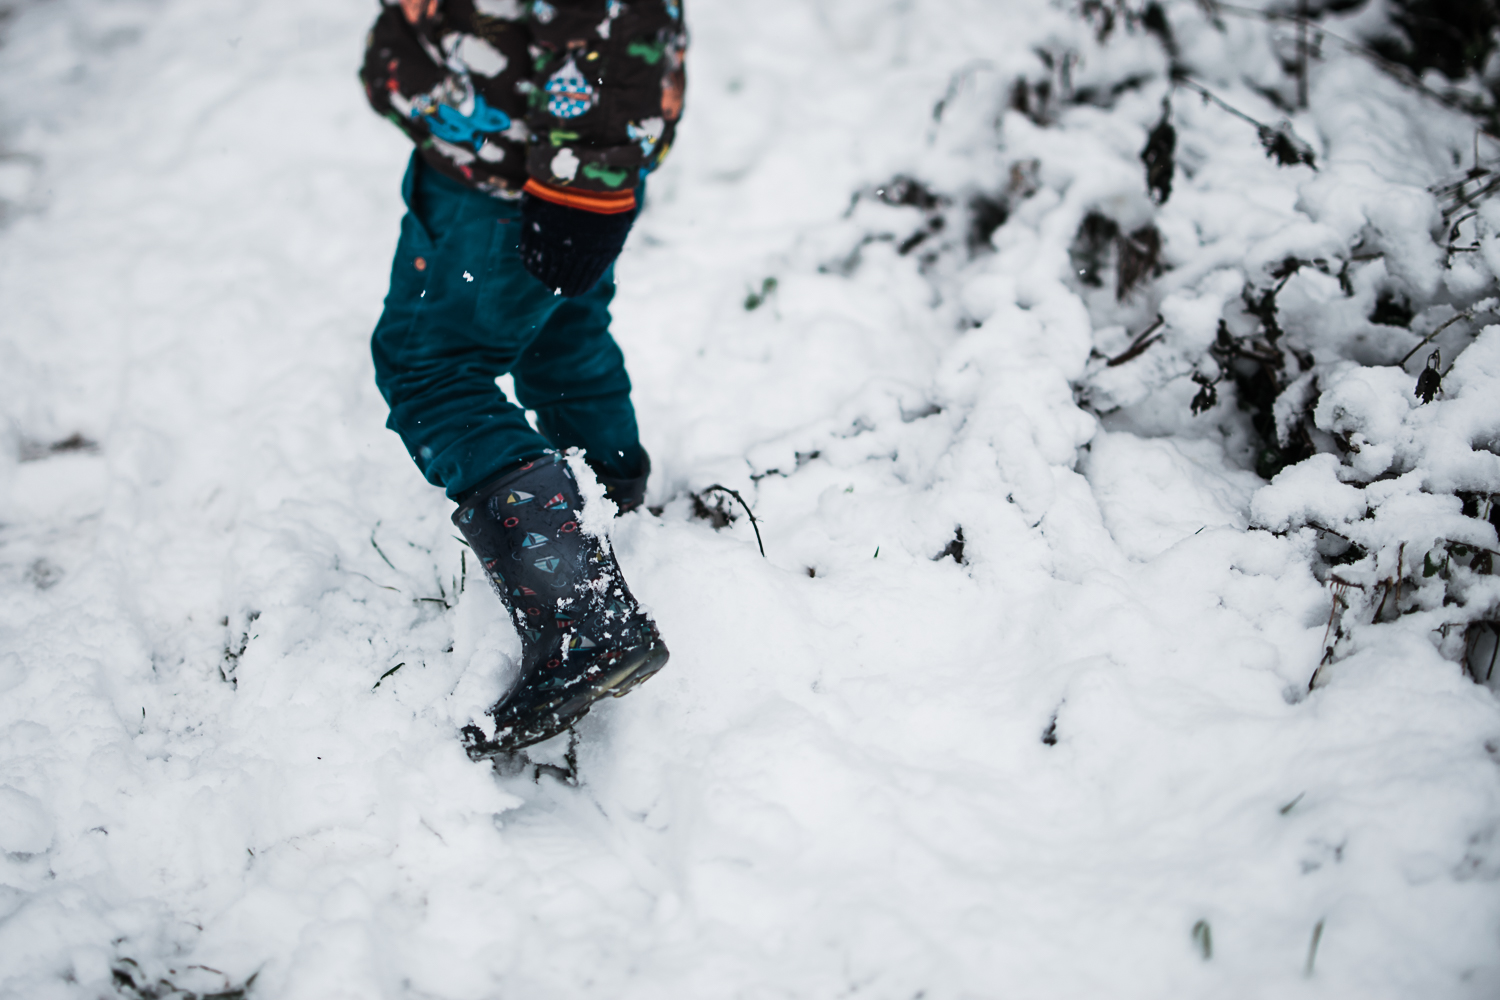 Wellies in the snow - Cambridge photographer Diana Hagues